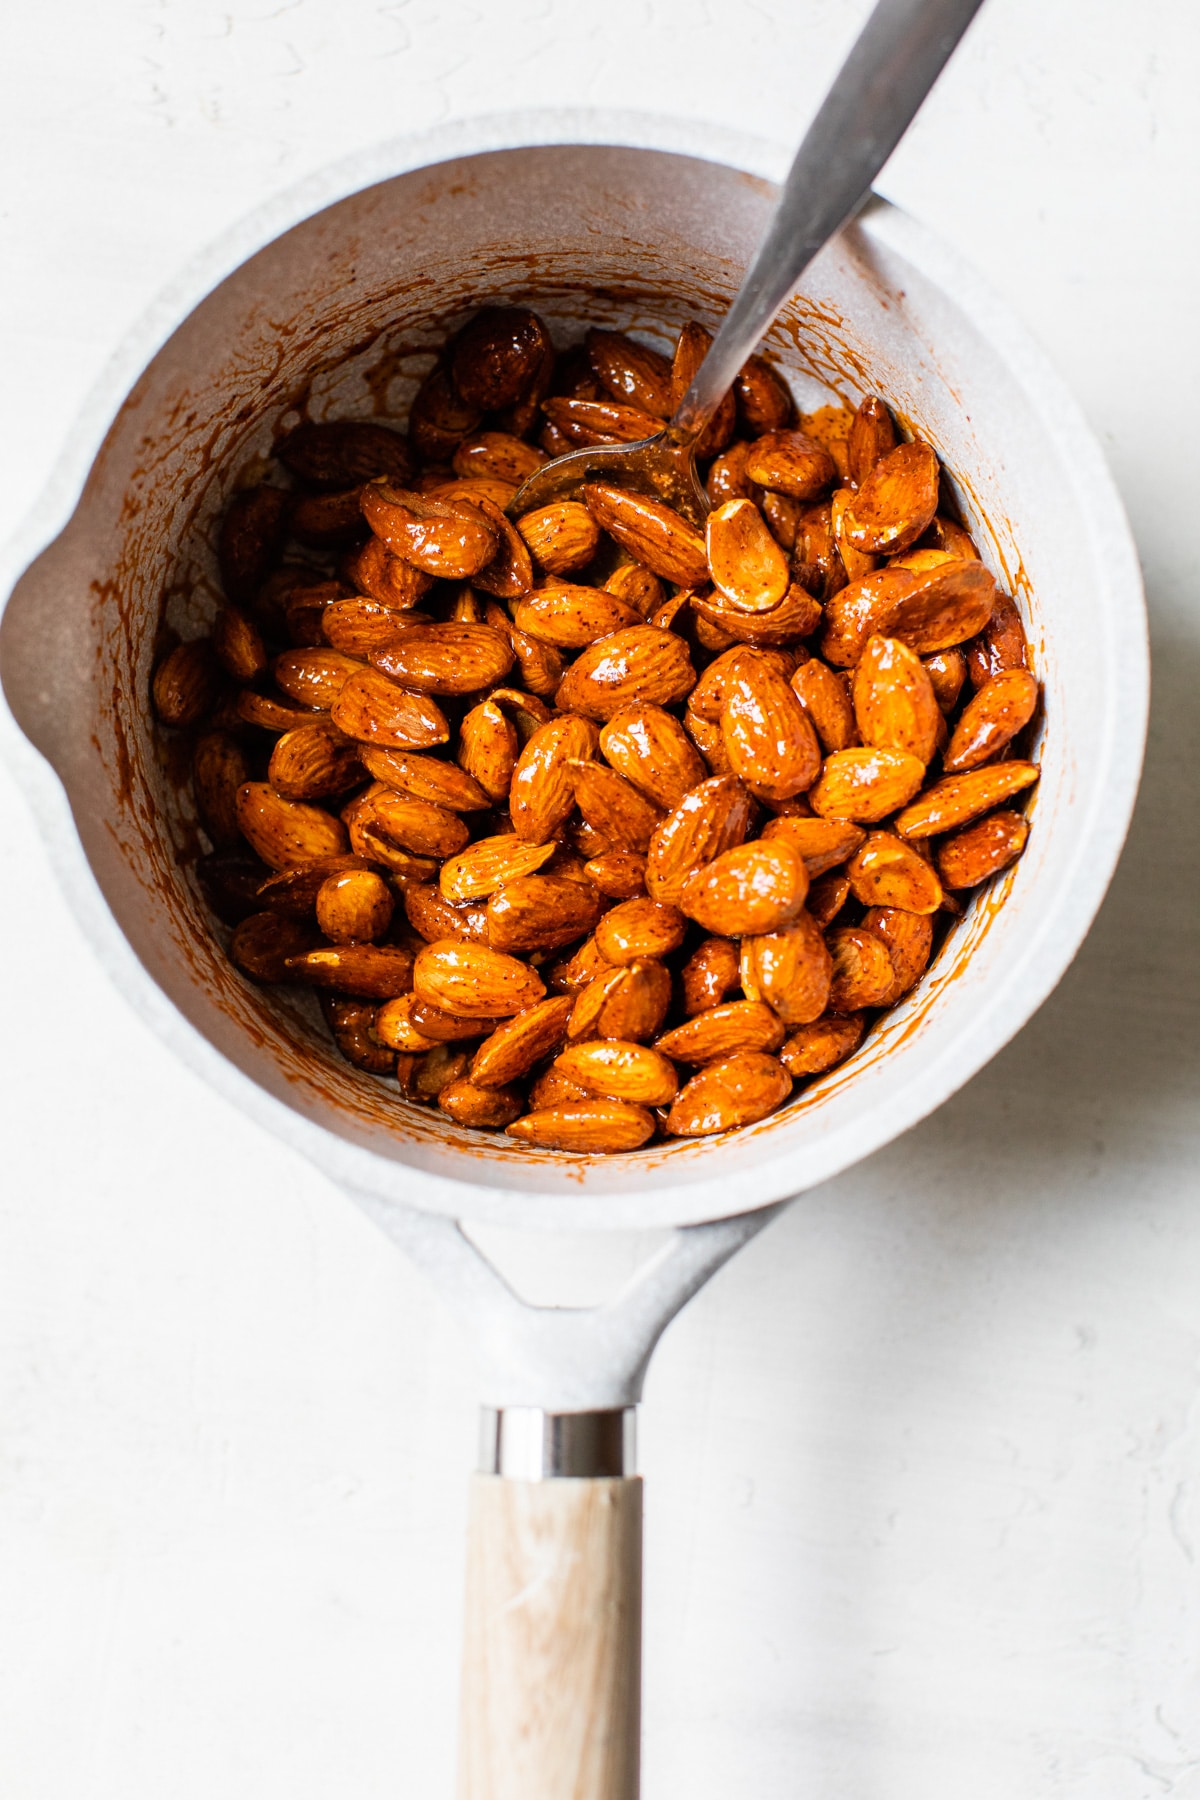 almonds covered in buffalo sauce